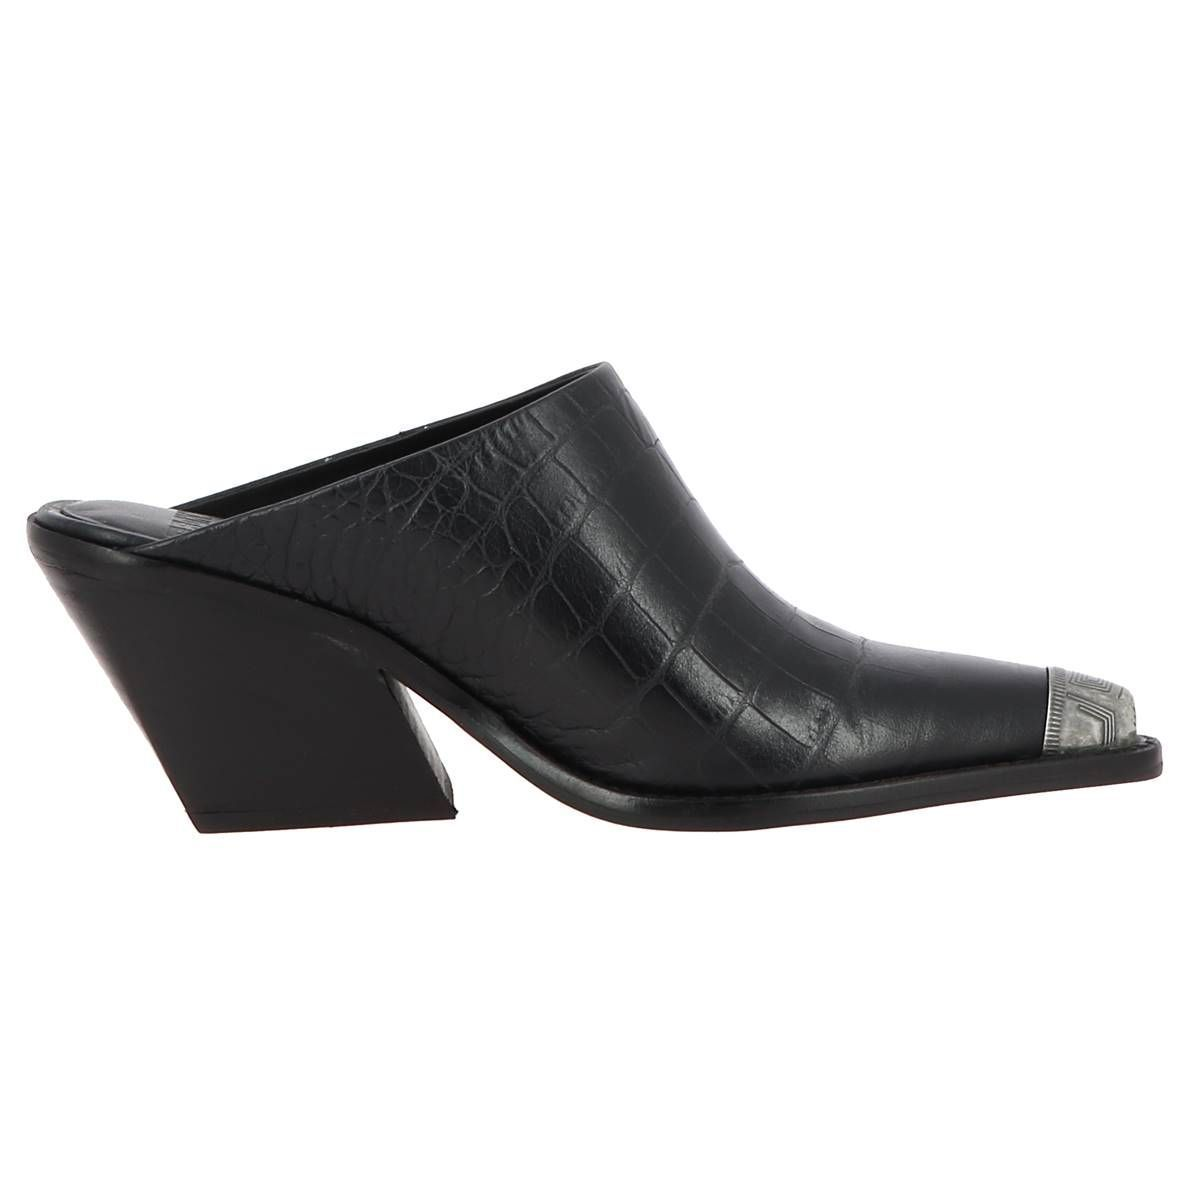 CTAS EVA  LIFT  OX LOW KOLE MULE:NOIR/CUIR/CUIR/SYNTHETIQUE/Noir